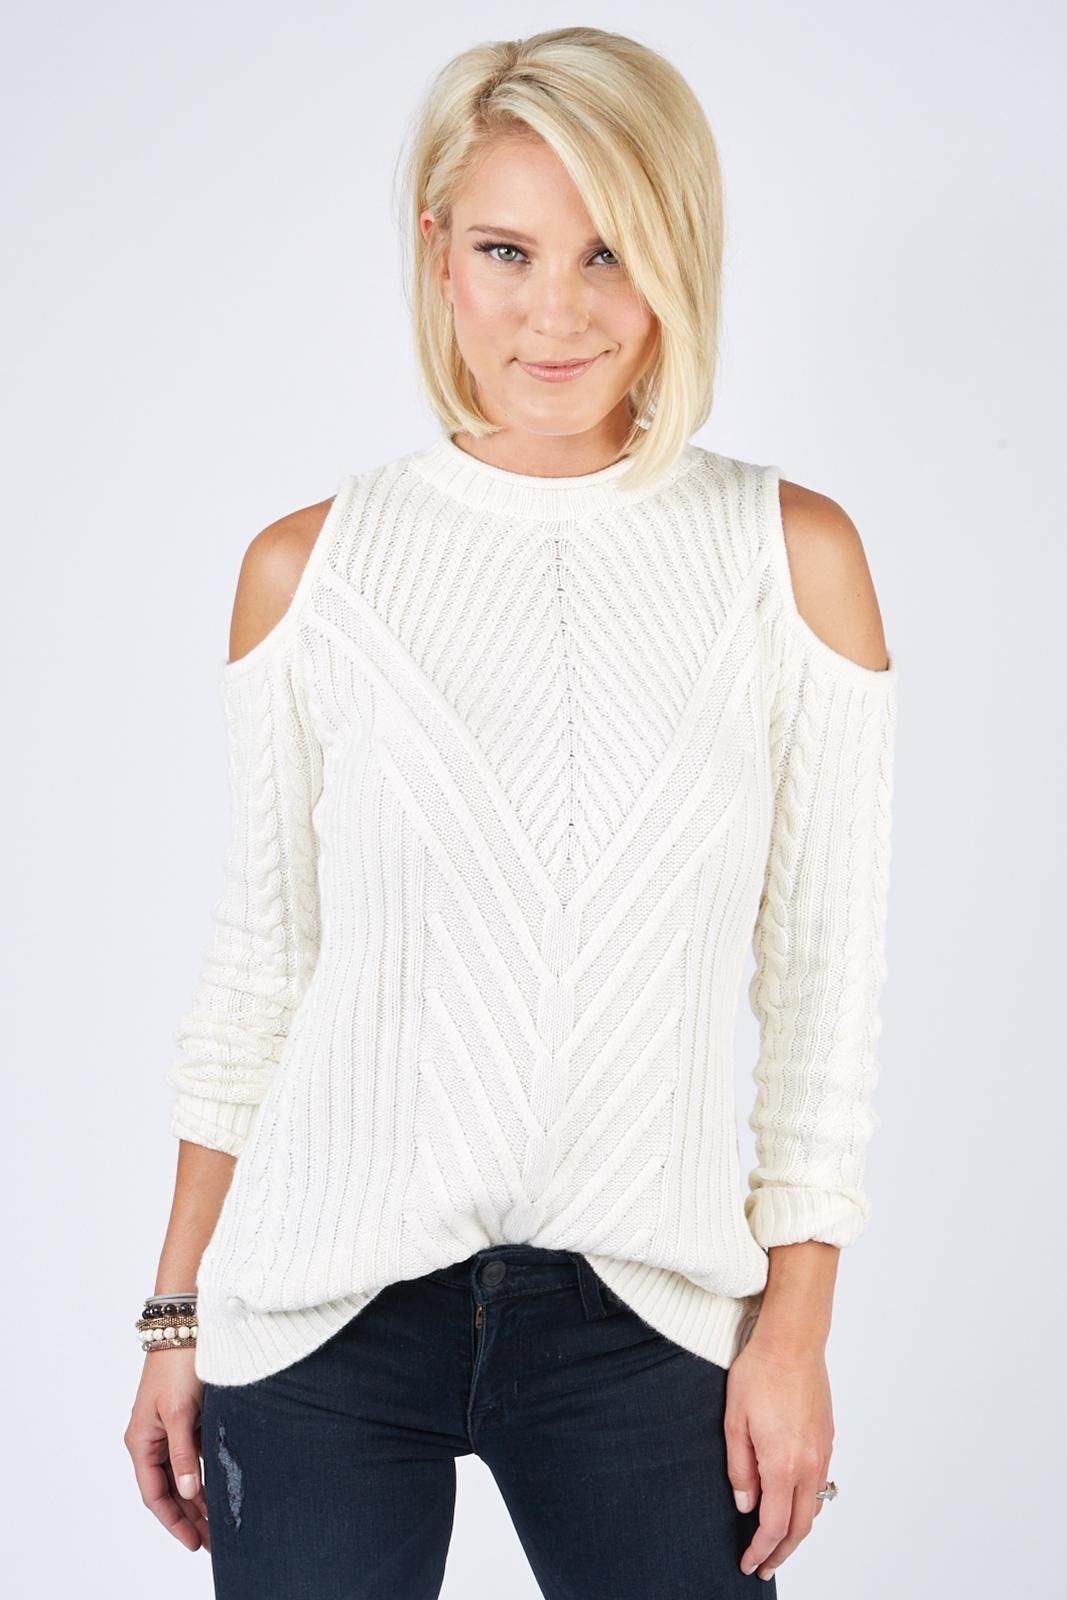 bf6907ee376b4b This cold shoulder sweater brings a little sexiness to a conservative cable  knit.